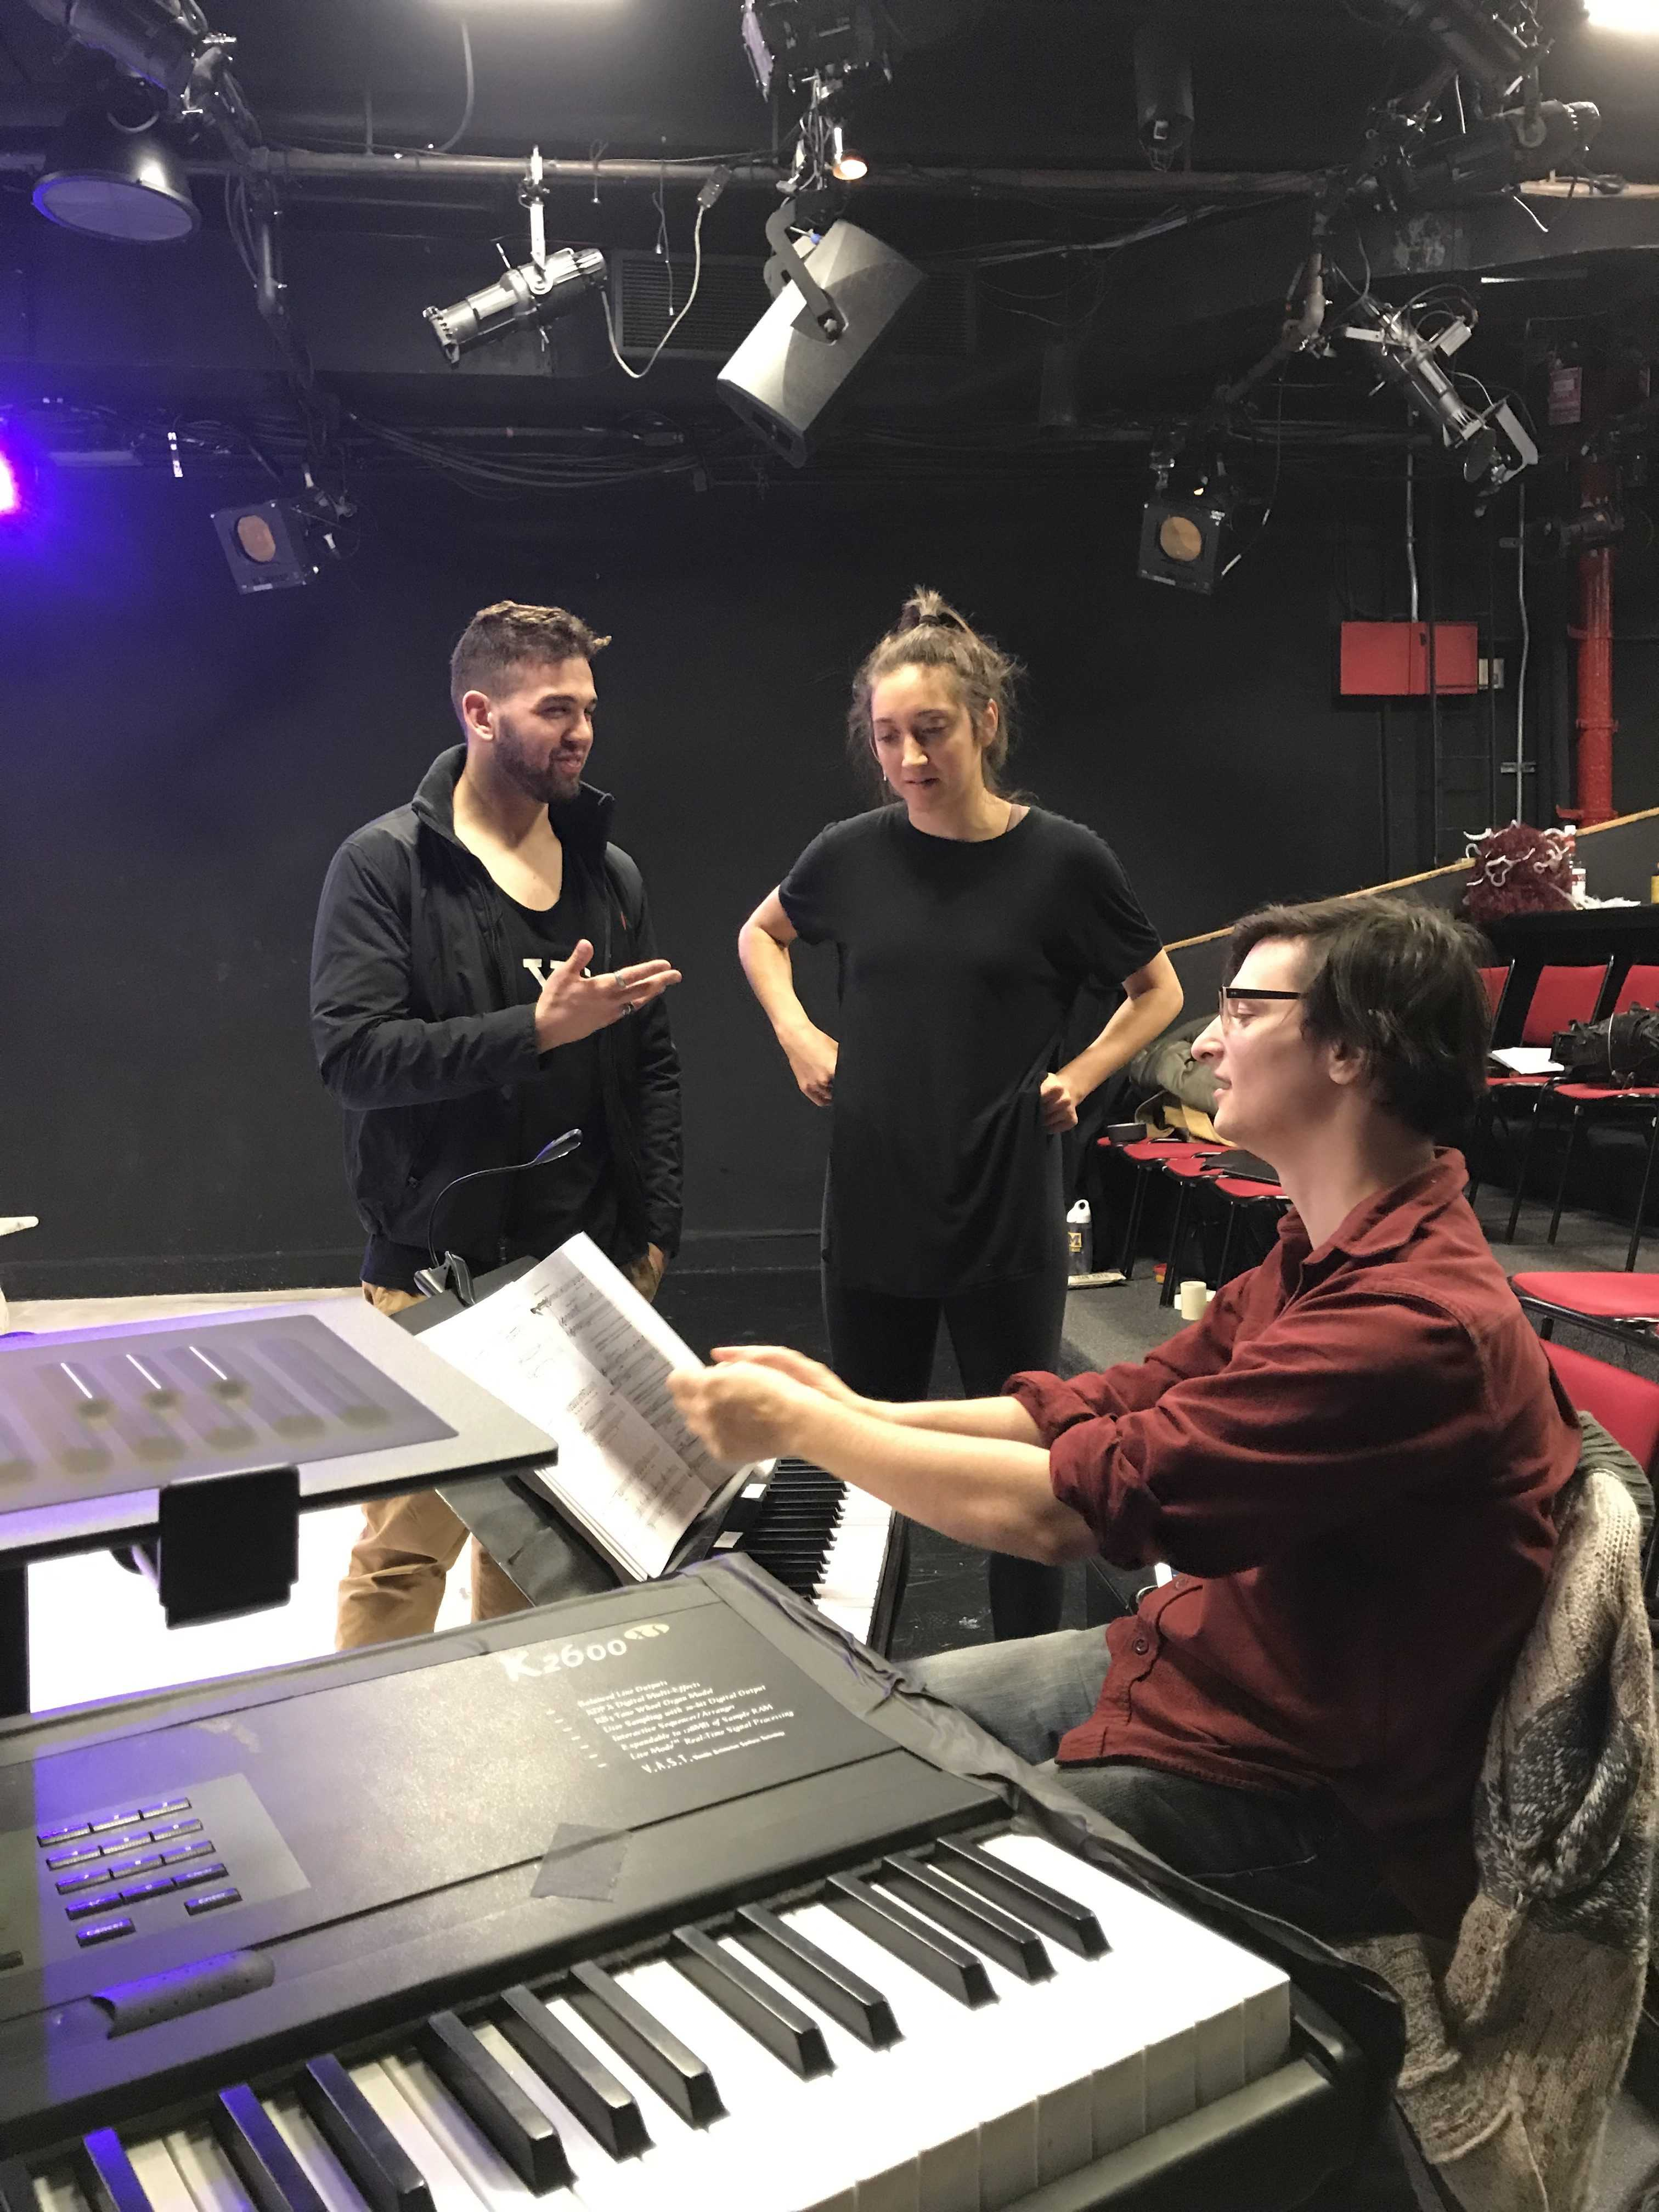 Behind the Script of Tisch's 'Medusa' | Washington Square News